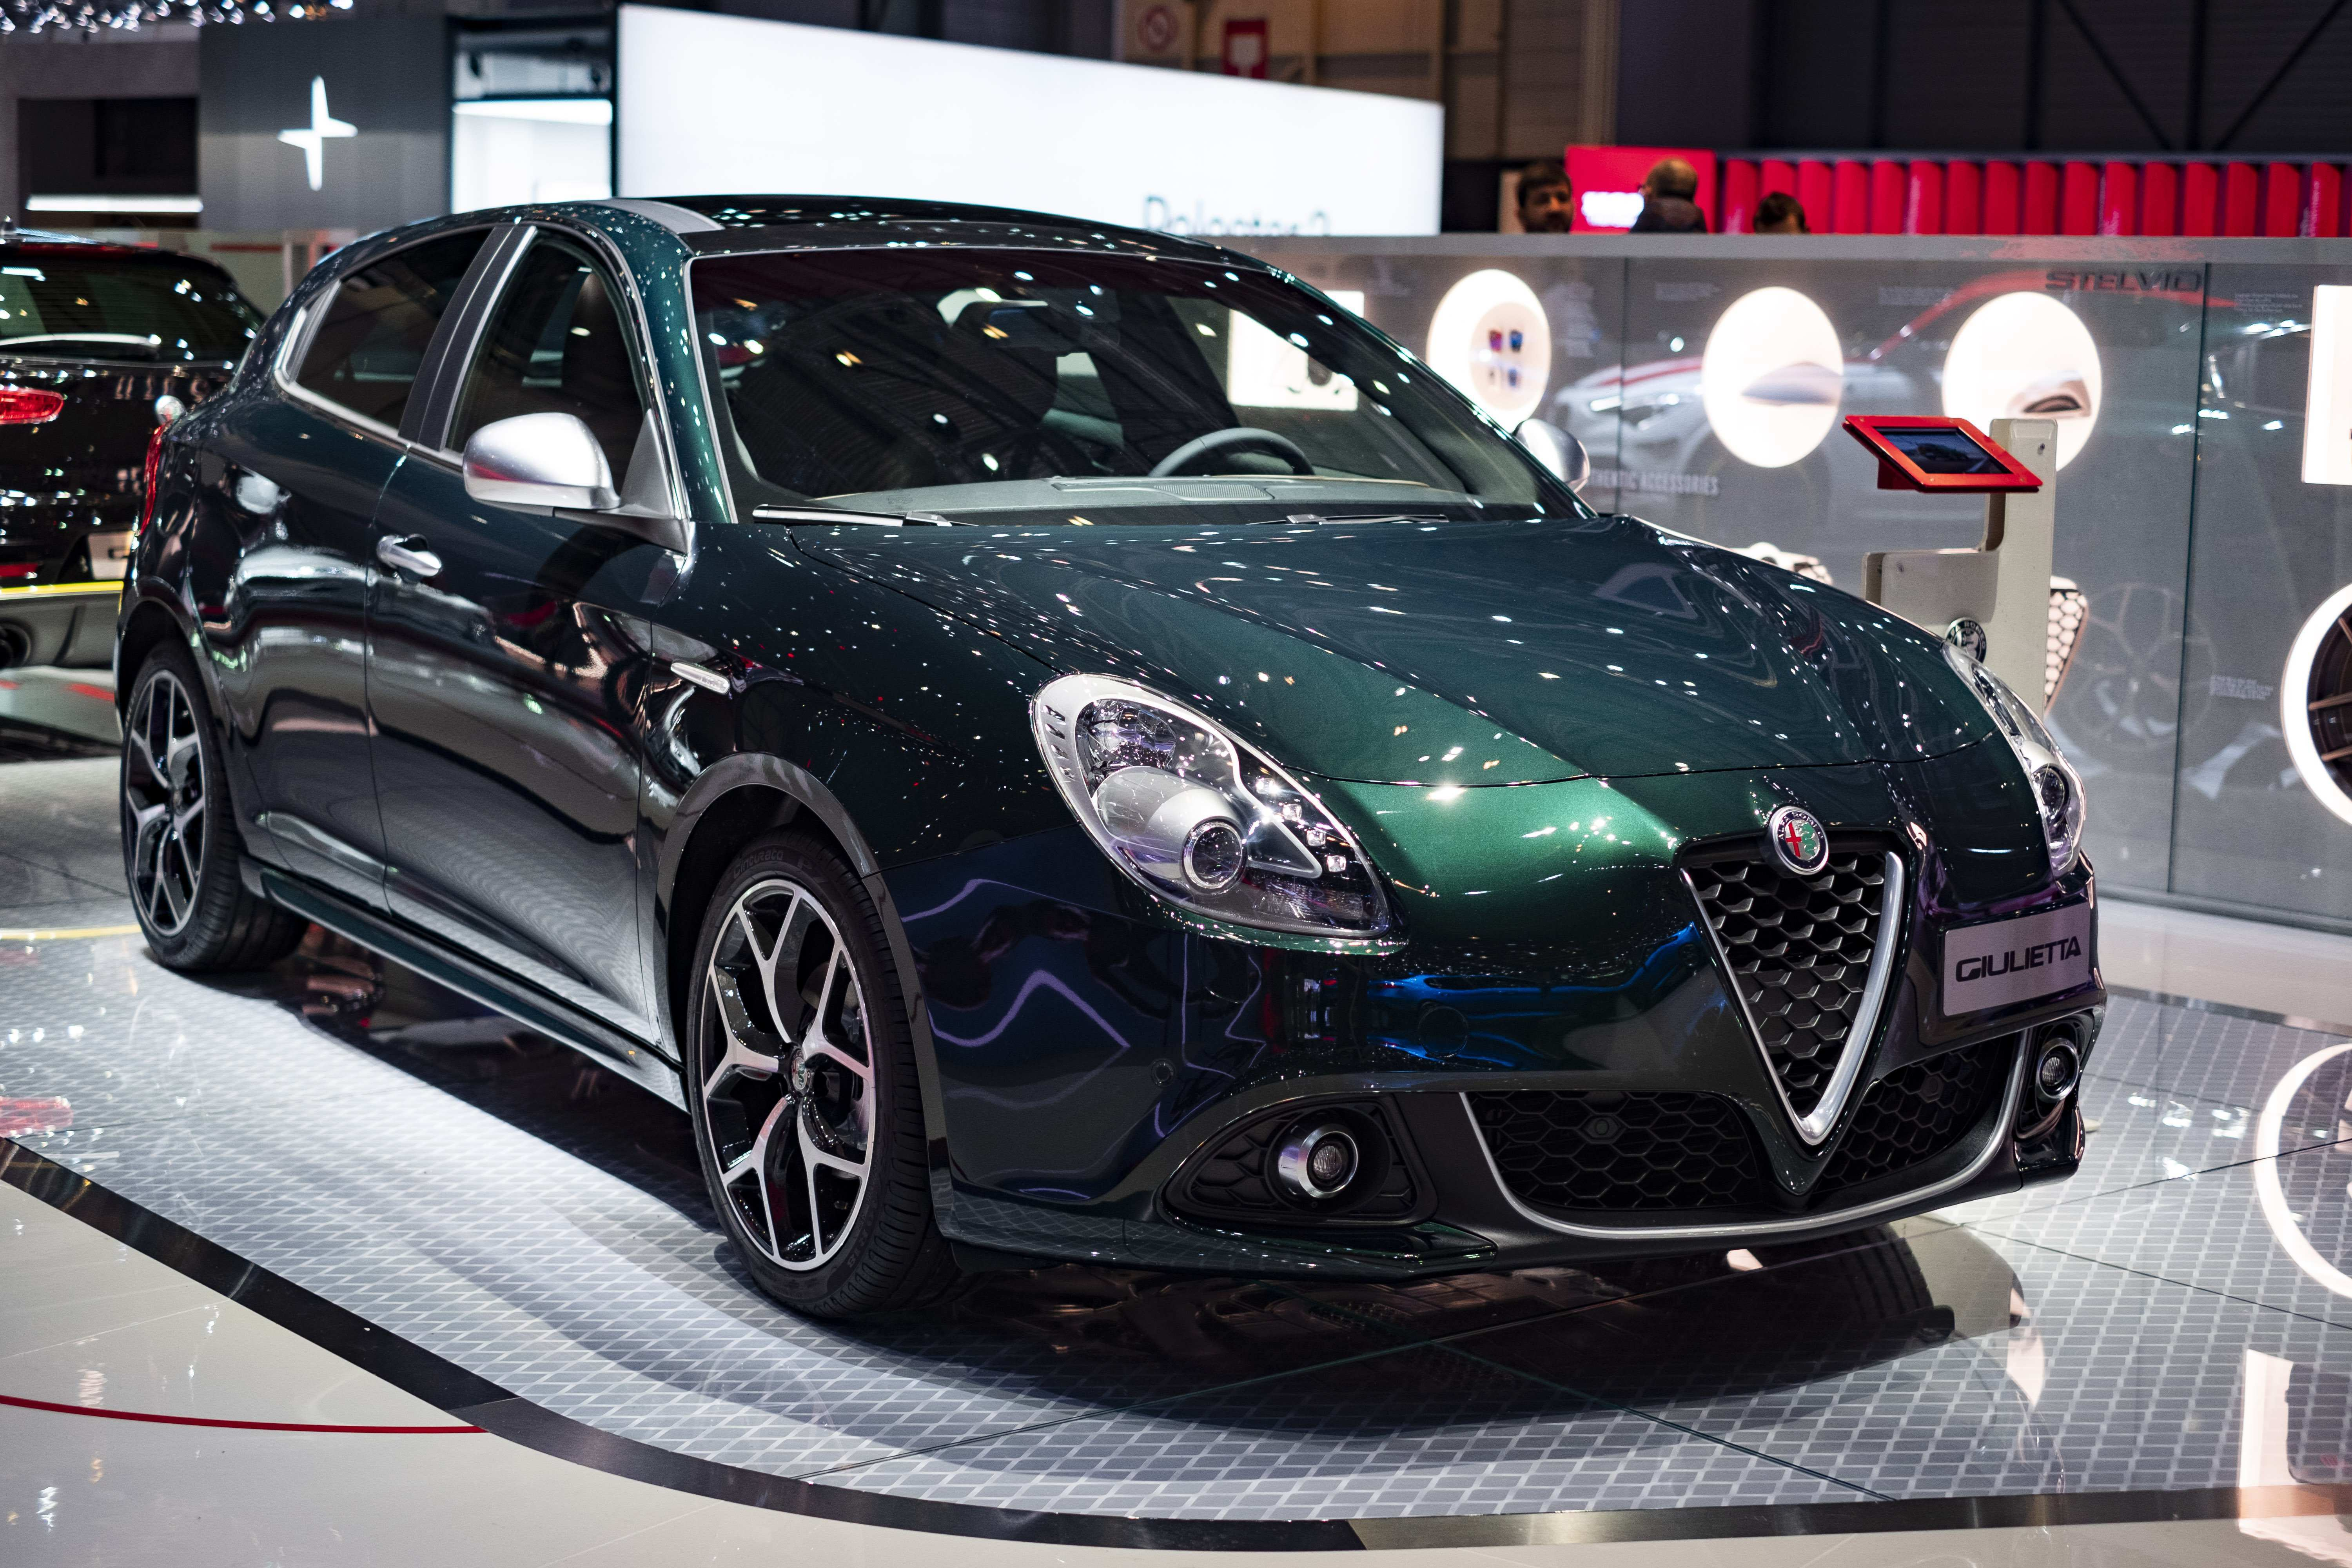 86 The Best 2020 Alfa Romeo Models Price Design And Review